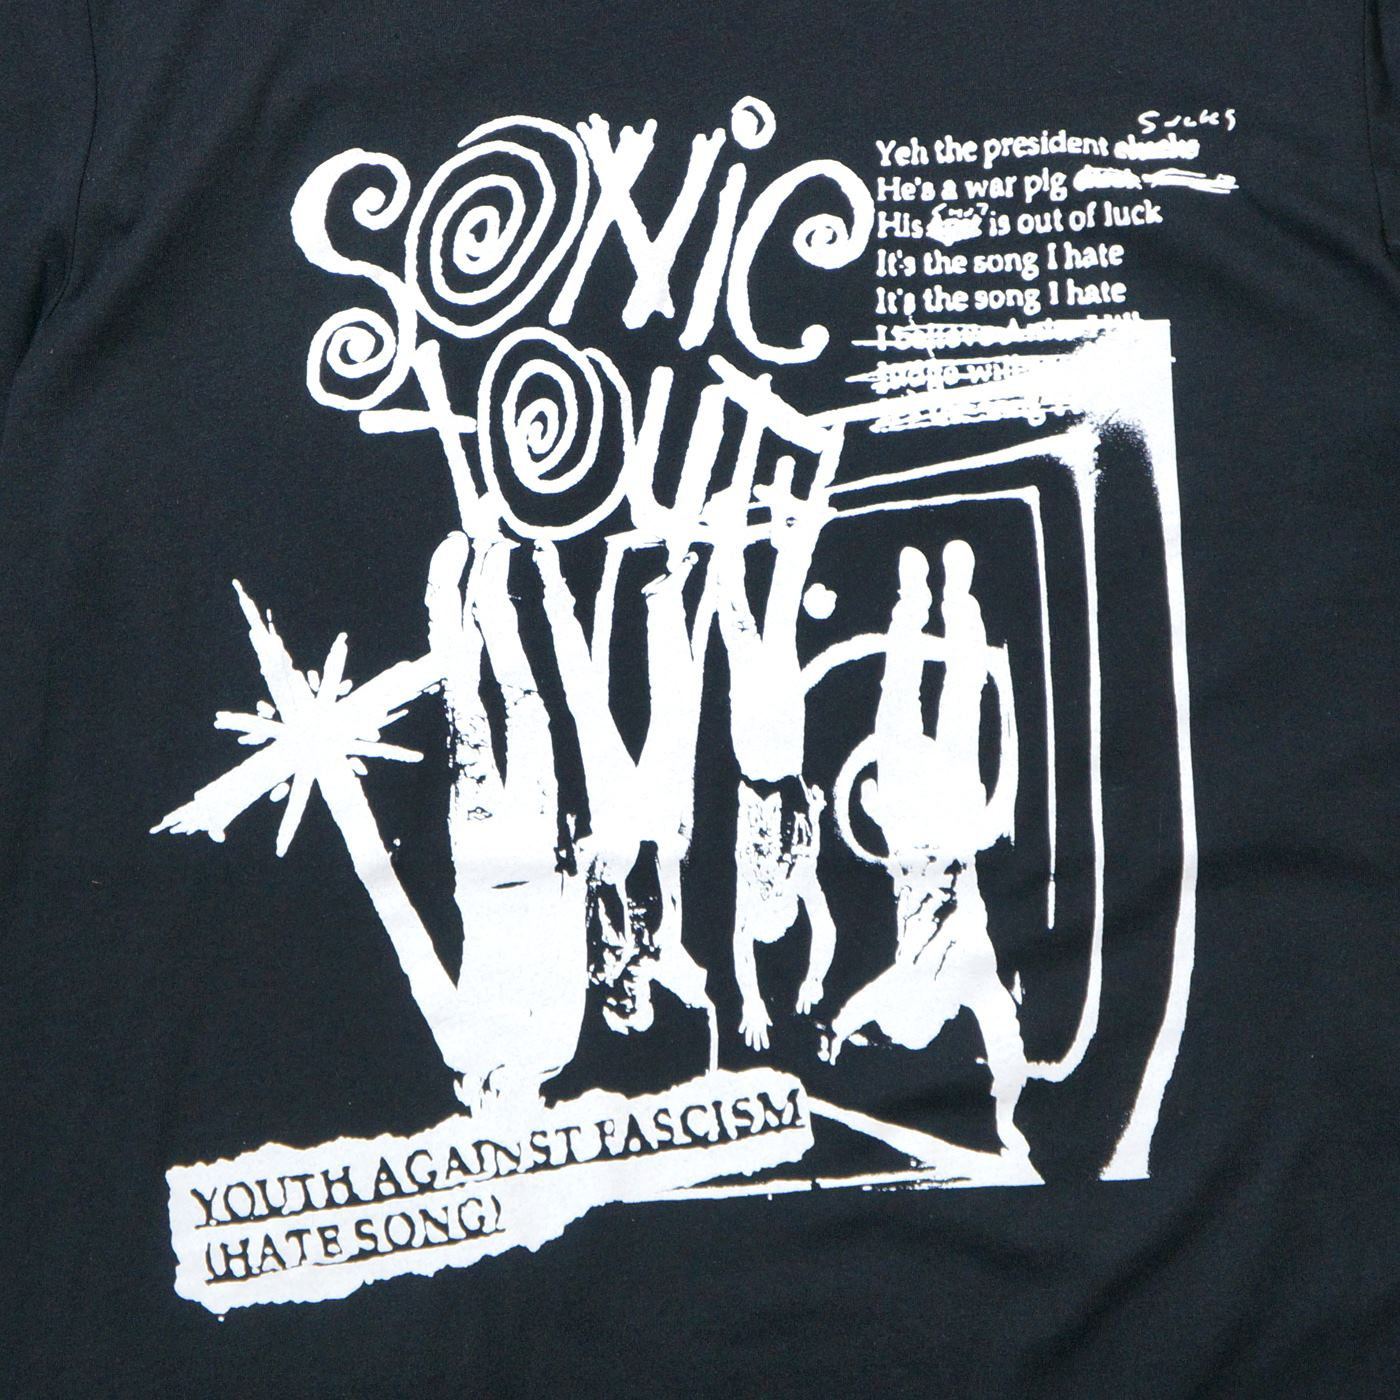 SONIC YOUTH Tシャツ Youth Against Fascism-Black